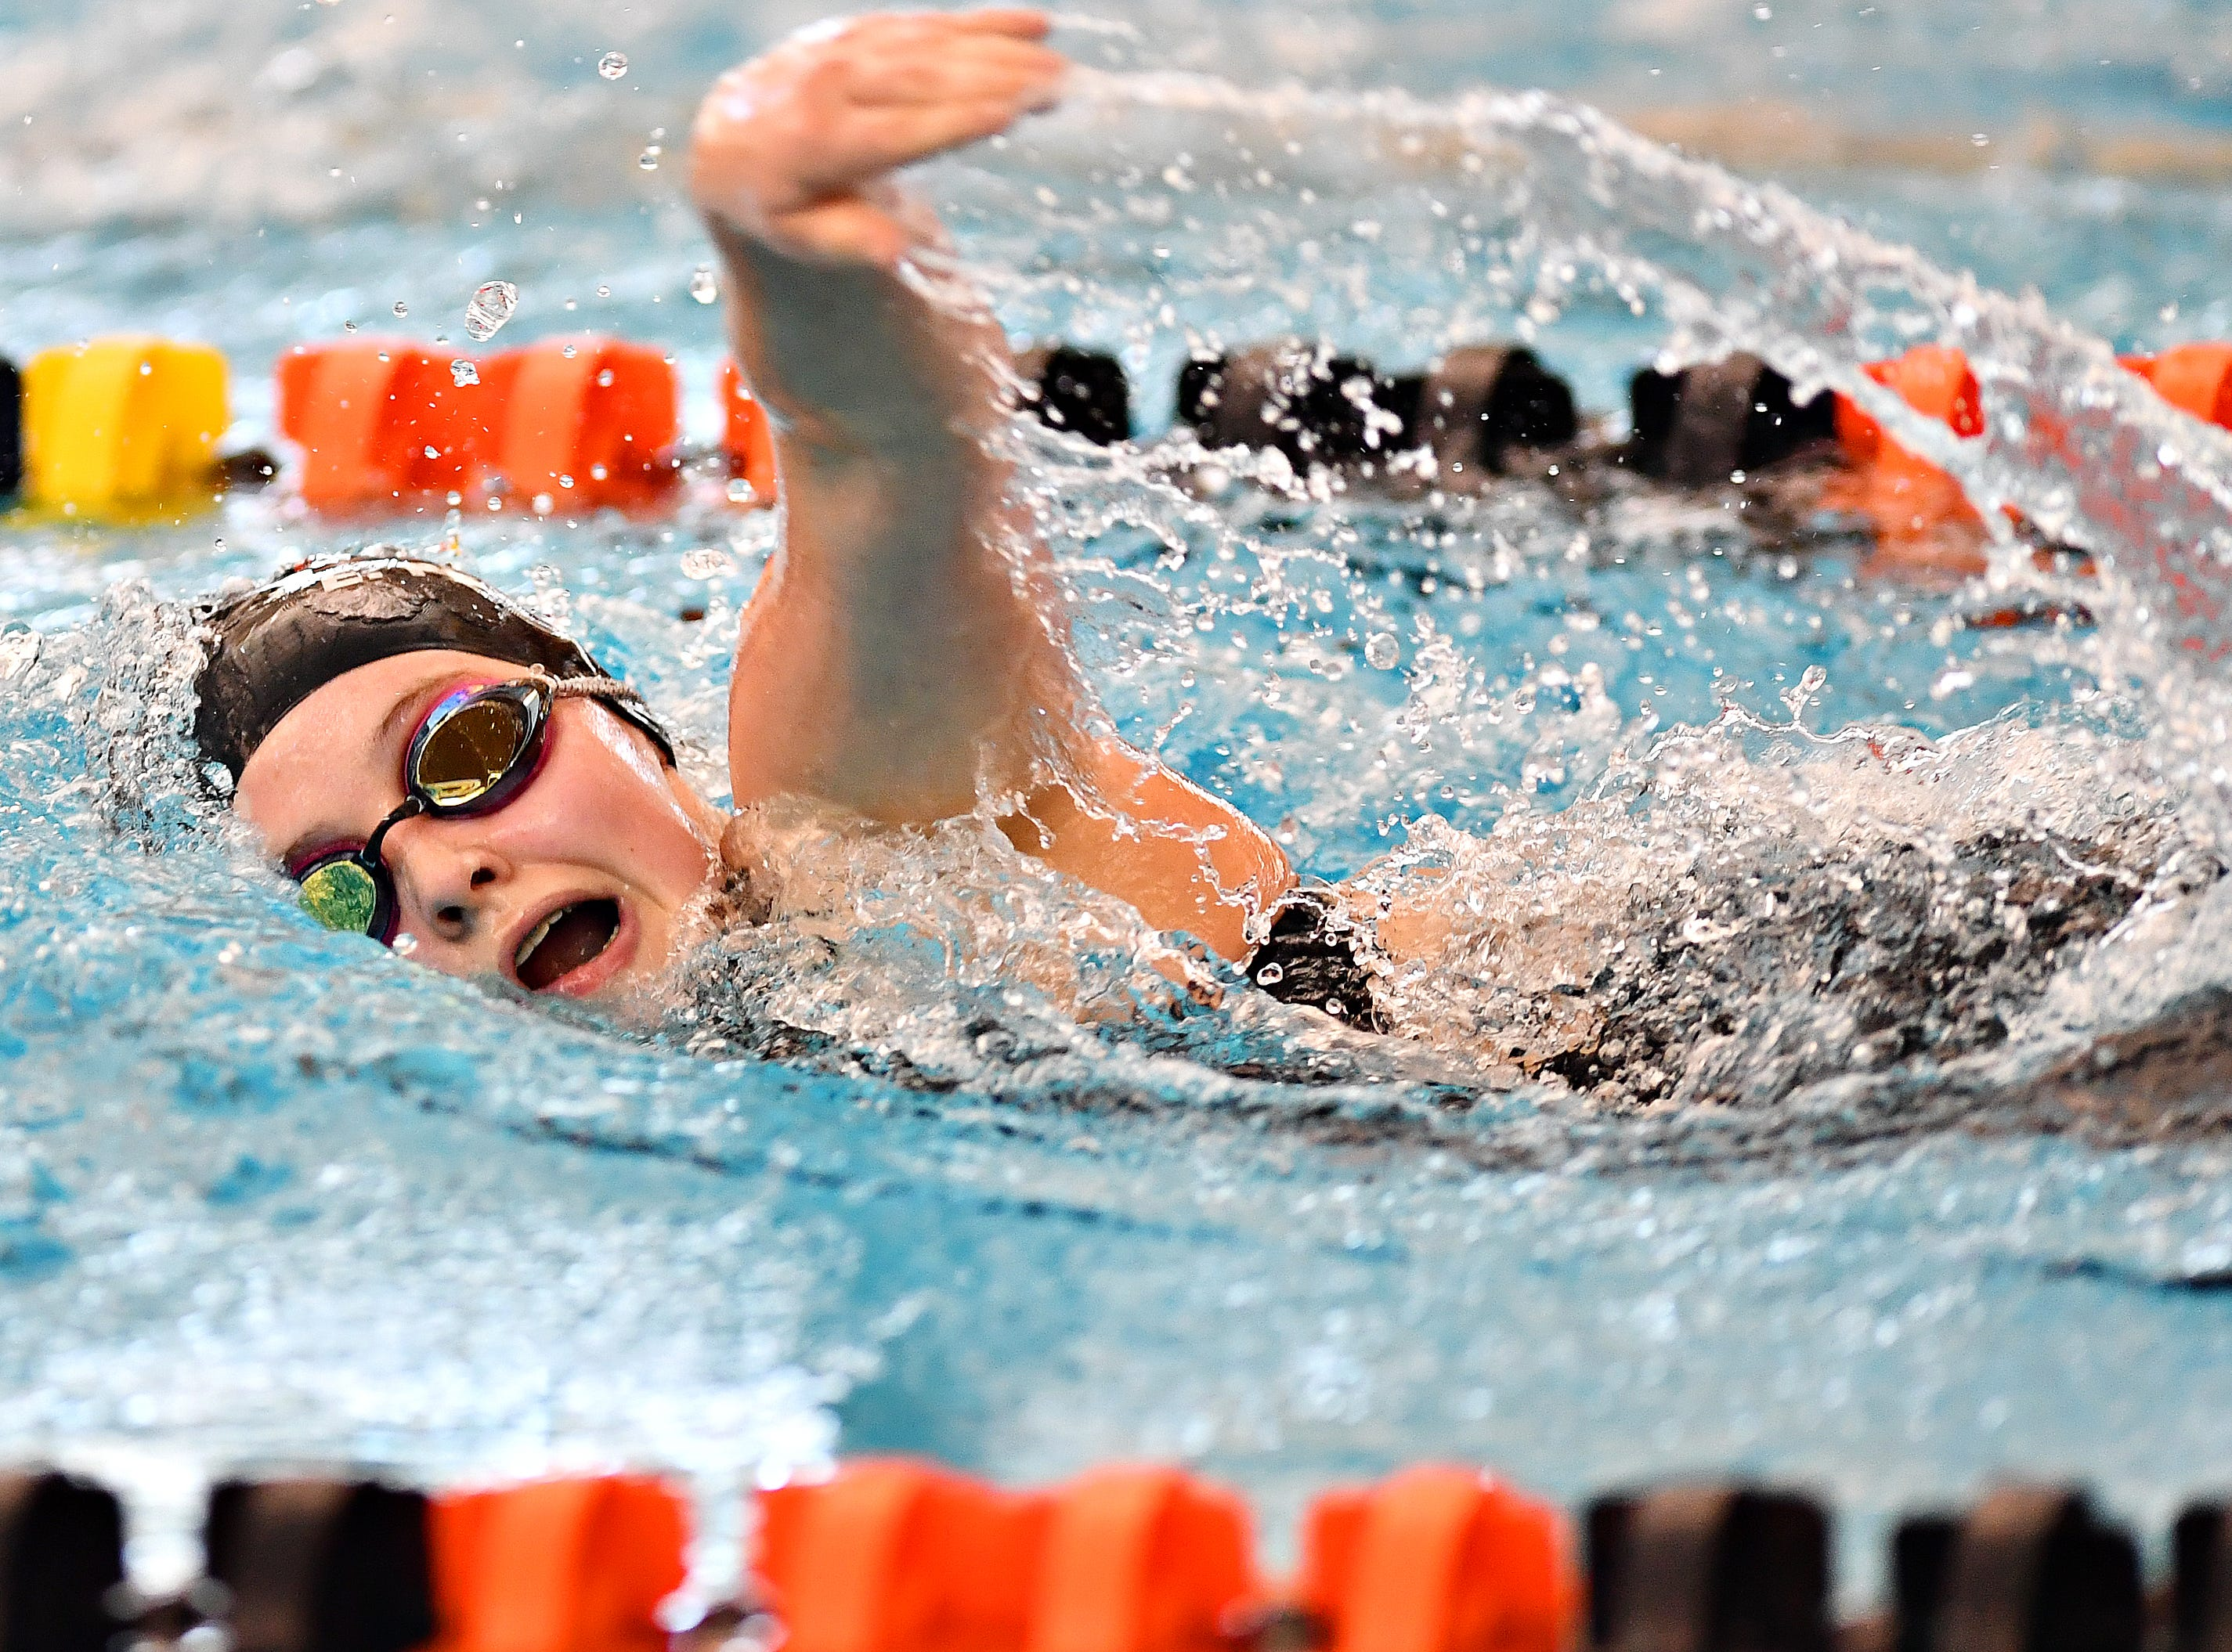 Dover's Emma Pequignot competes in the 500 Yard Freestyle event during York-Adams League Swimming Championship at Central York High School in Springettsbury Township, Saturday, Feb. 9, 2019. Dawn J. Sagert photo